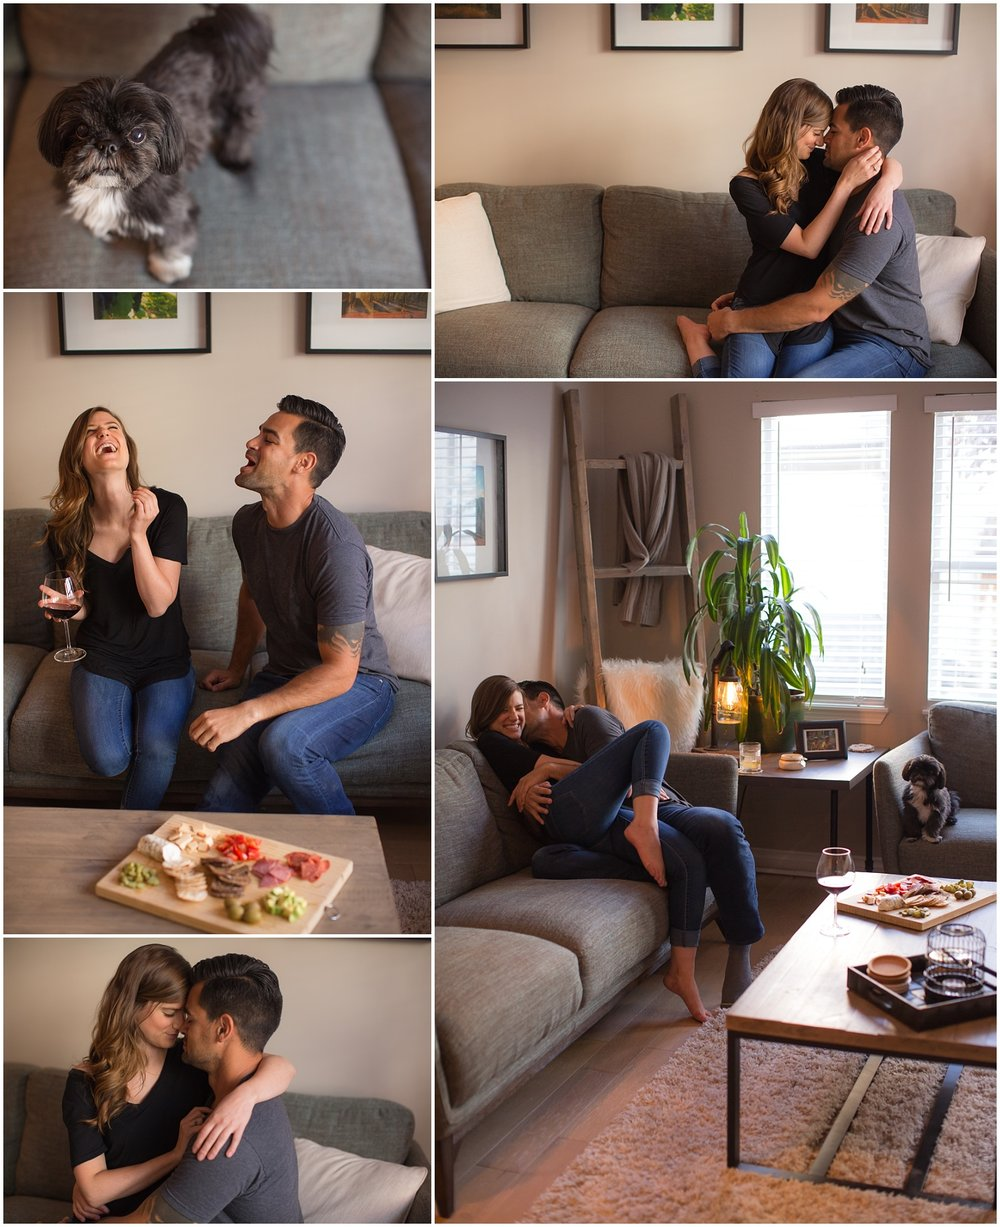 Amazing Day Photography - Home Couples Session - Langley Photographer (4).jpg